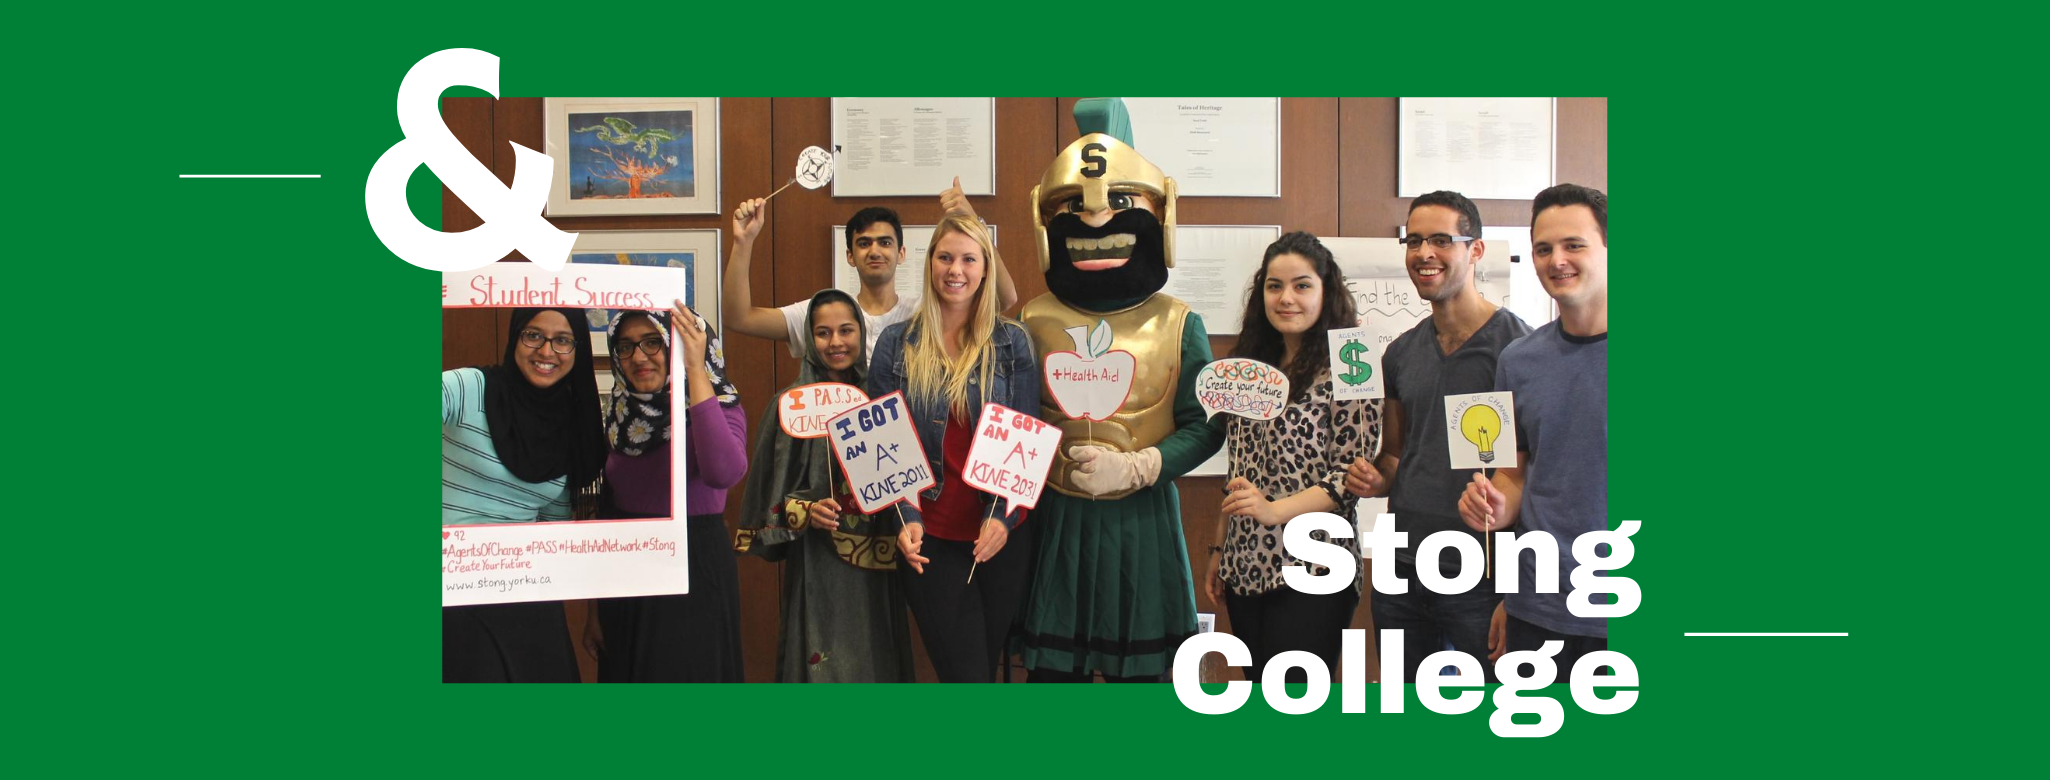 """9 students standing in line facing the camera. Students are holding """"Student Success"""" posters. In the center stands the Stong mascot."""